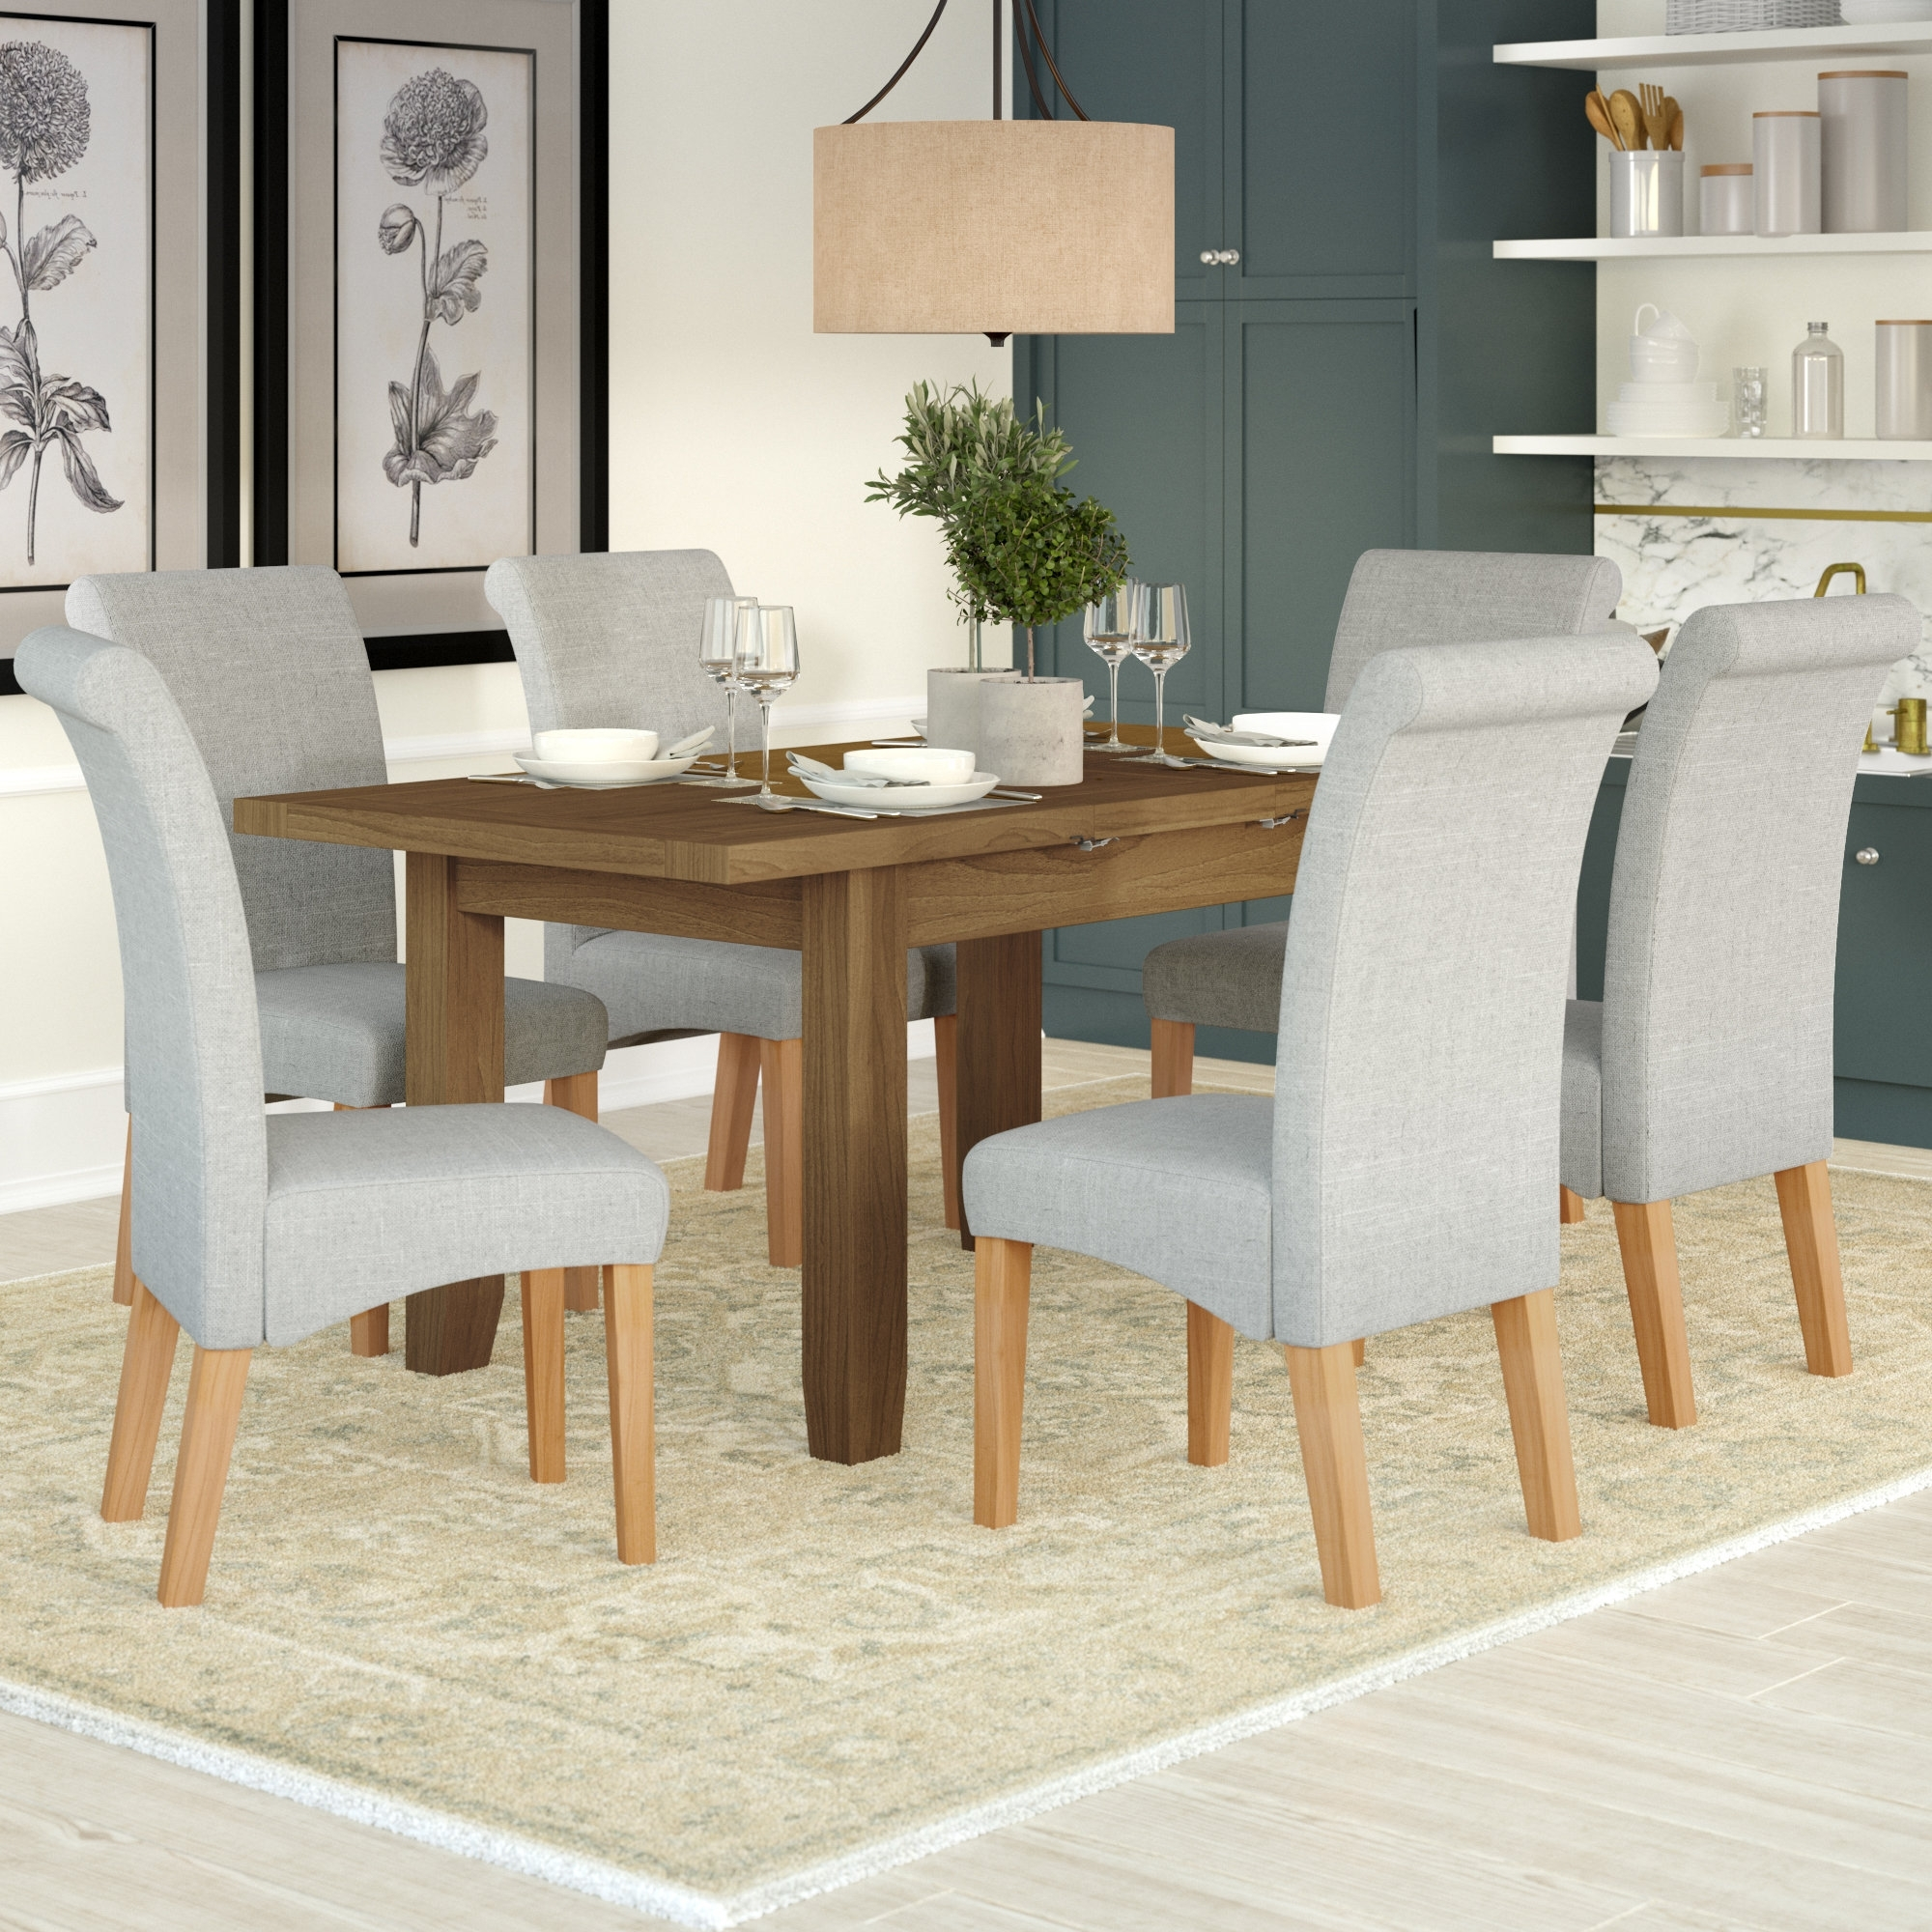 2018 Extendable Dining Table And 6 Chairs Regarding Three Posts Berwick Extendable Dining Table And 6 Chairs & Reviews (View 5 of 25)